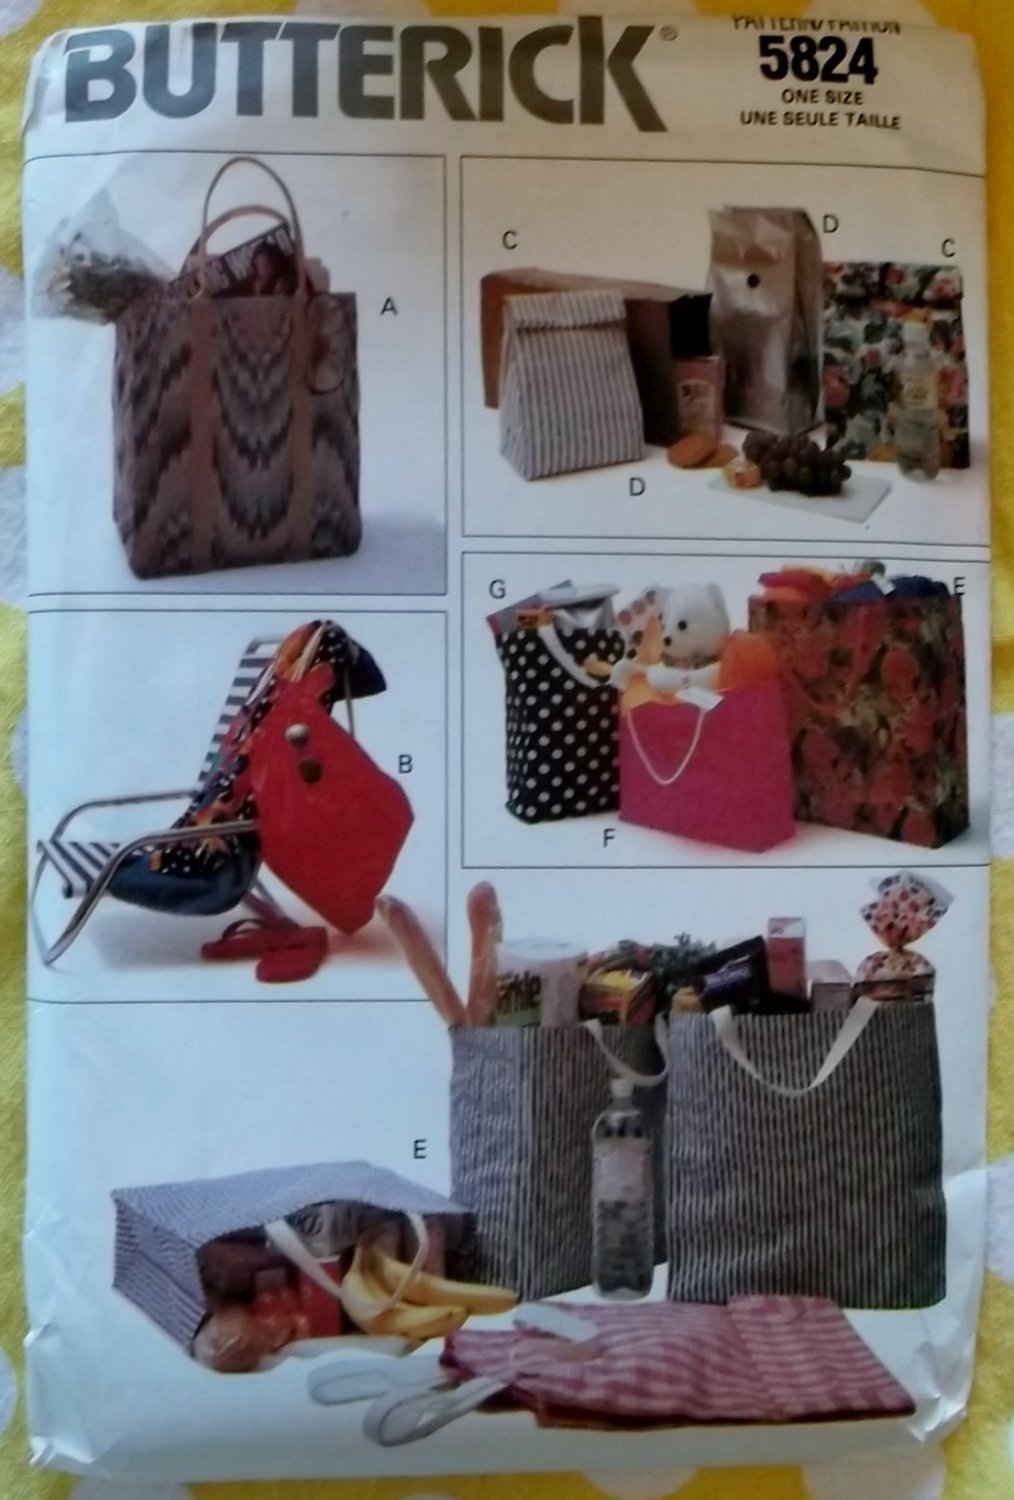 Butterick 5824 Re-usable Tote Bags, Draw string, Lunch, Sewing Pattern, Uncut